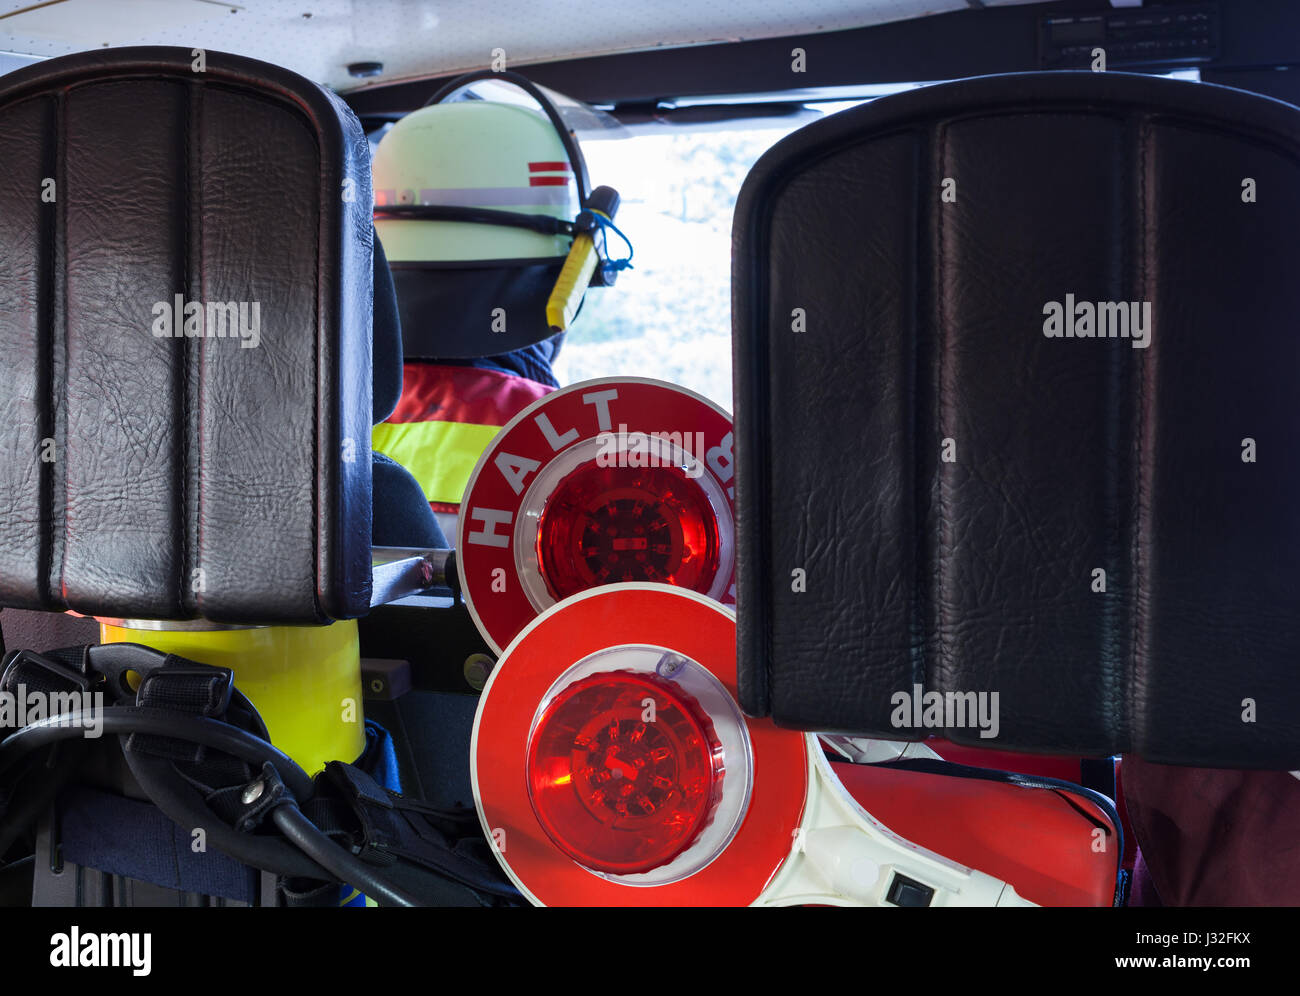 German firefighter in a emergency vehicle with halt-stop trowels - Stock Image